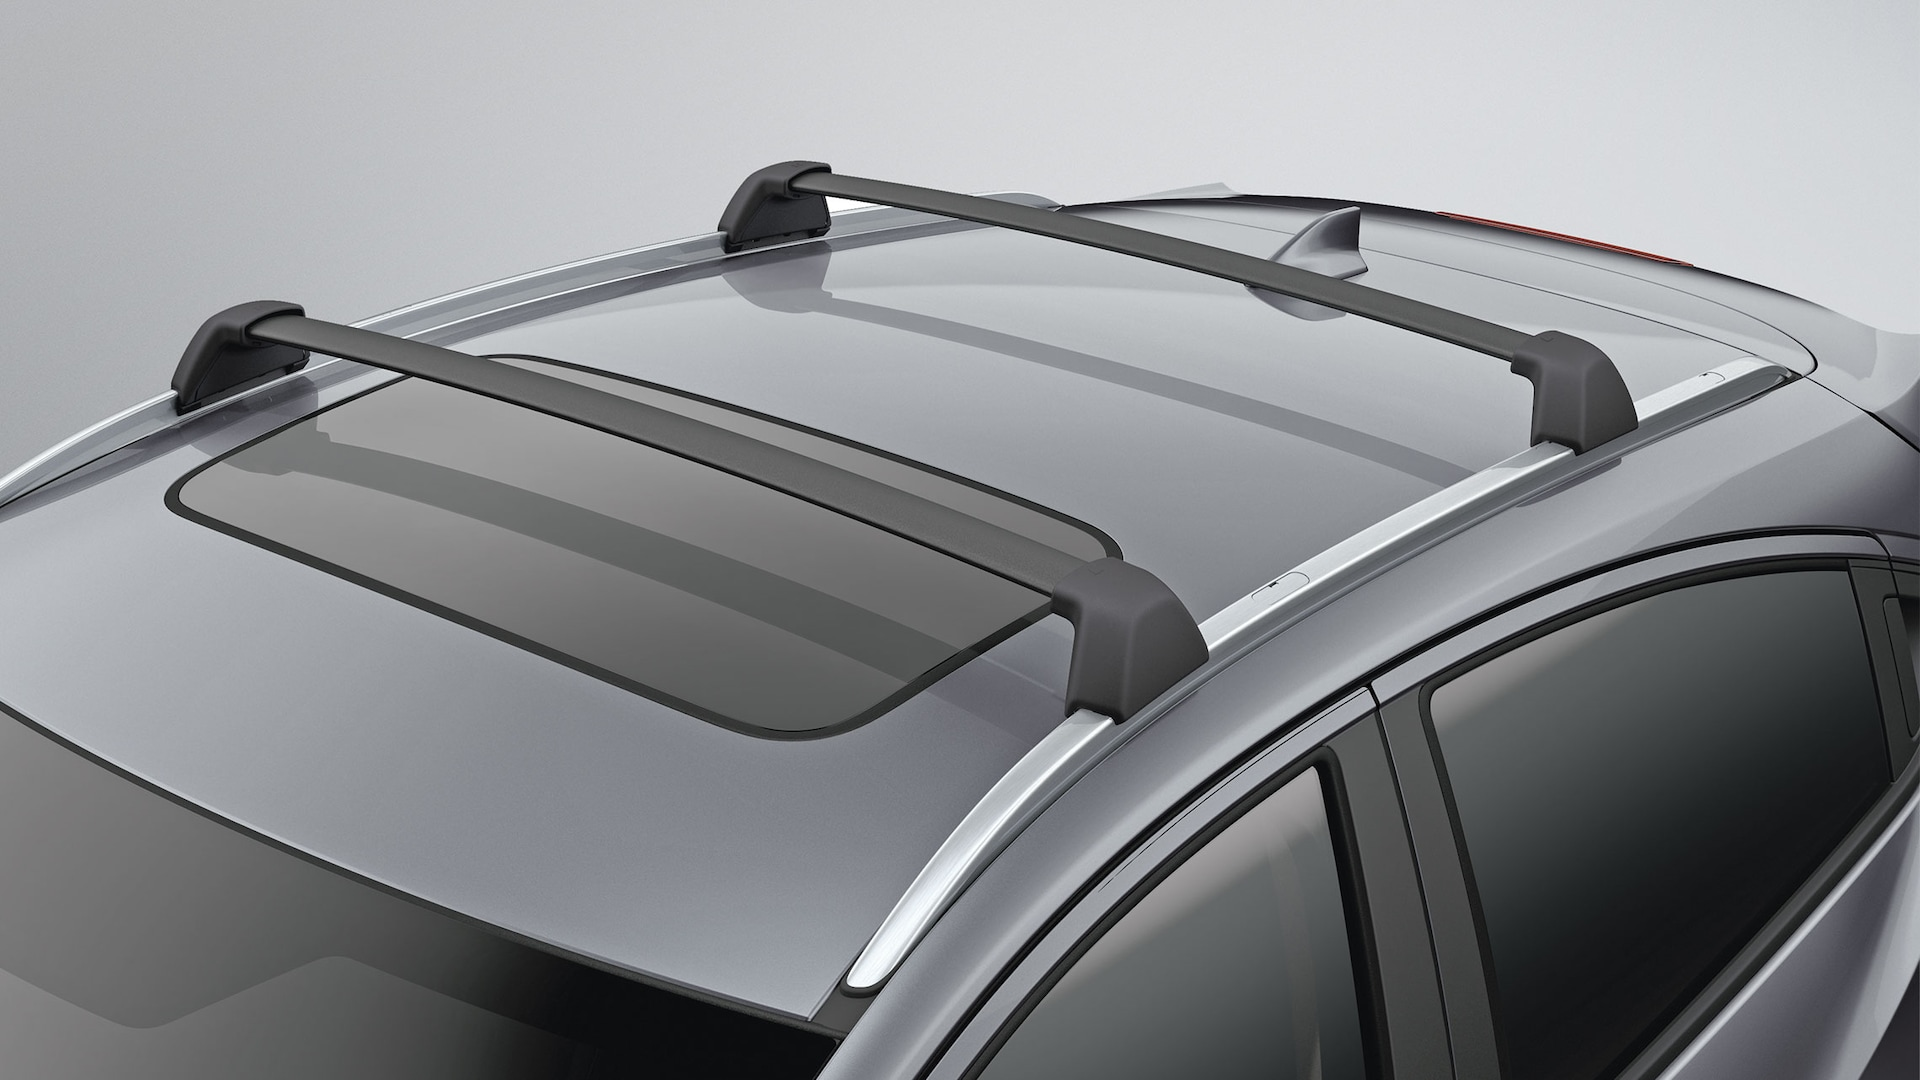 Detail view of crossbar on roof of the 2020 Honda HR-V.